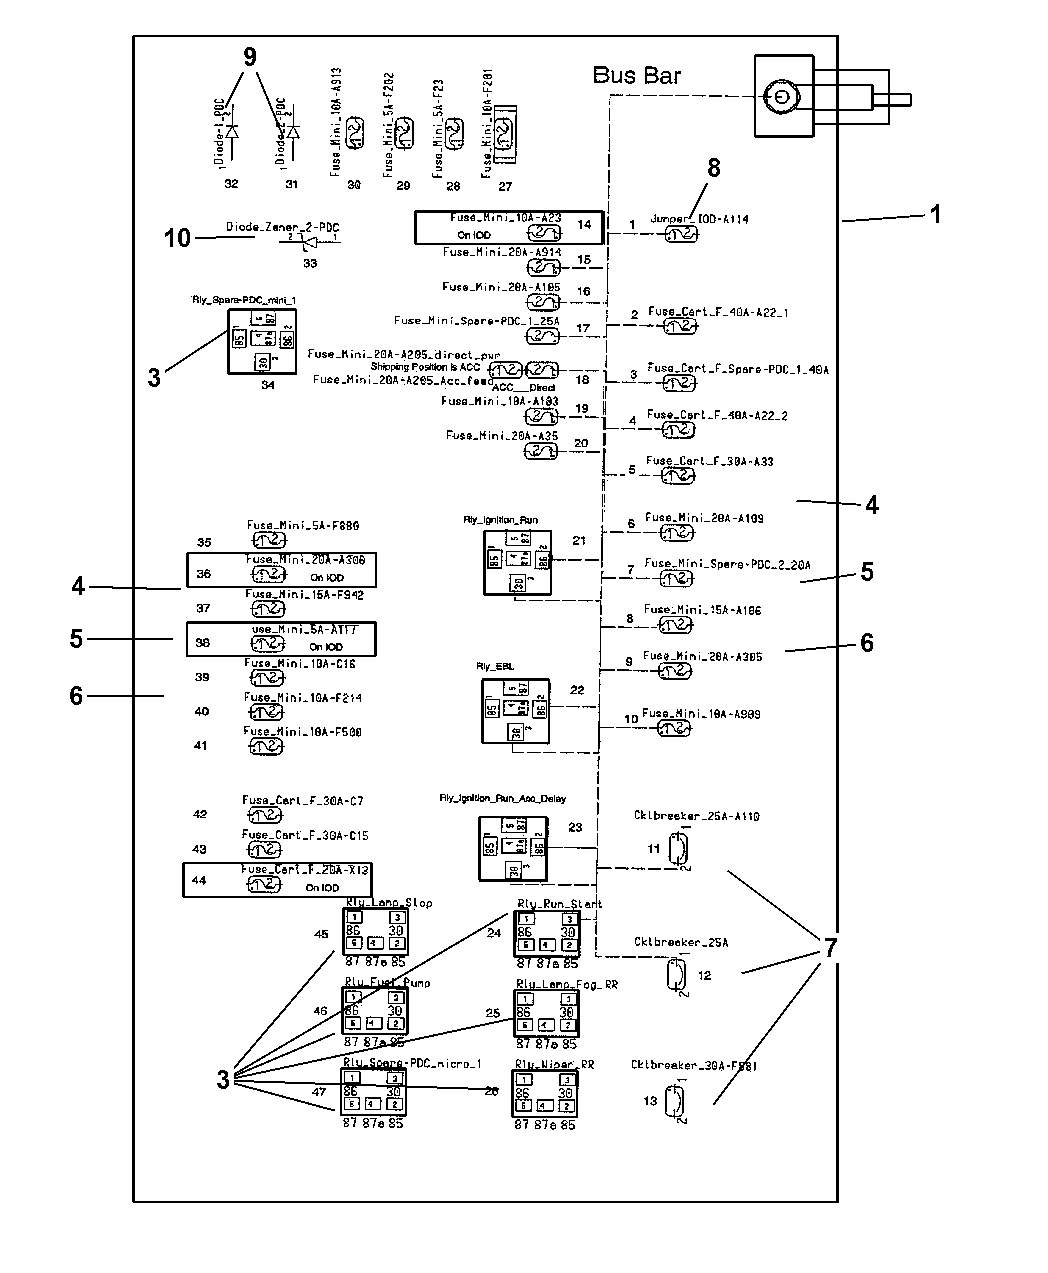 2006 dodge hemi engine diagram 2006 5 7 hemi engine diagram #12